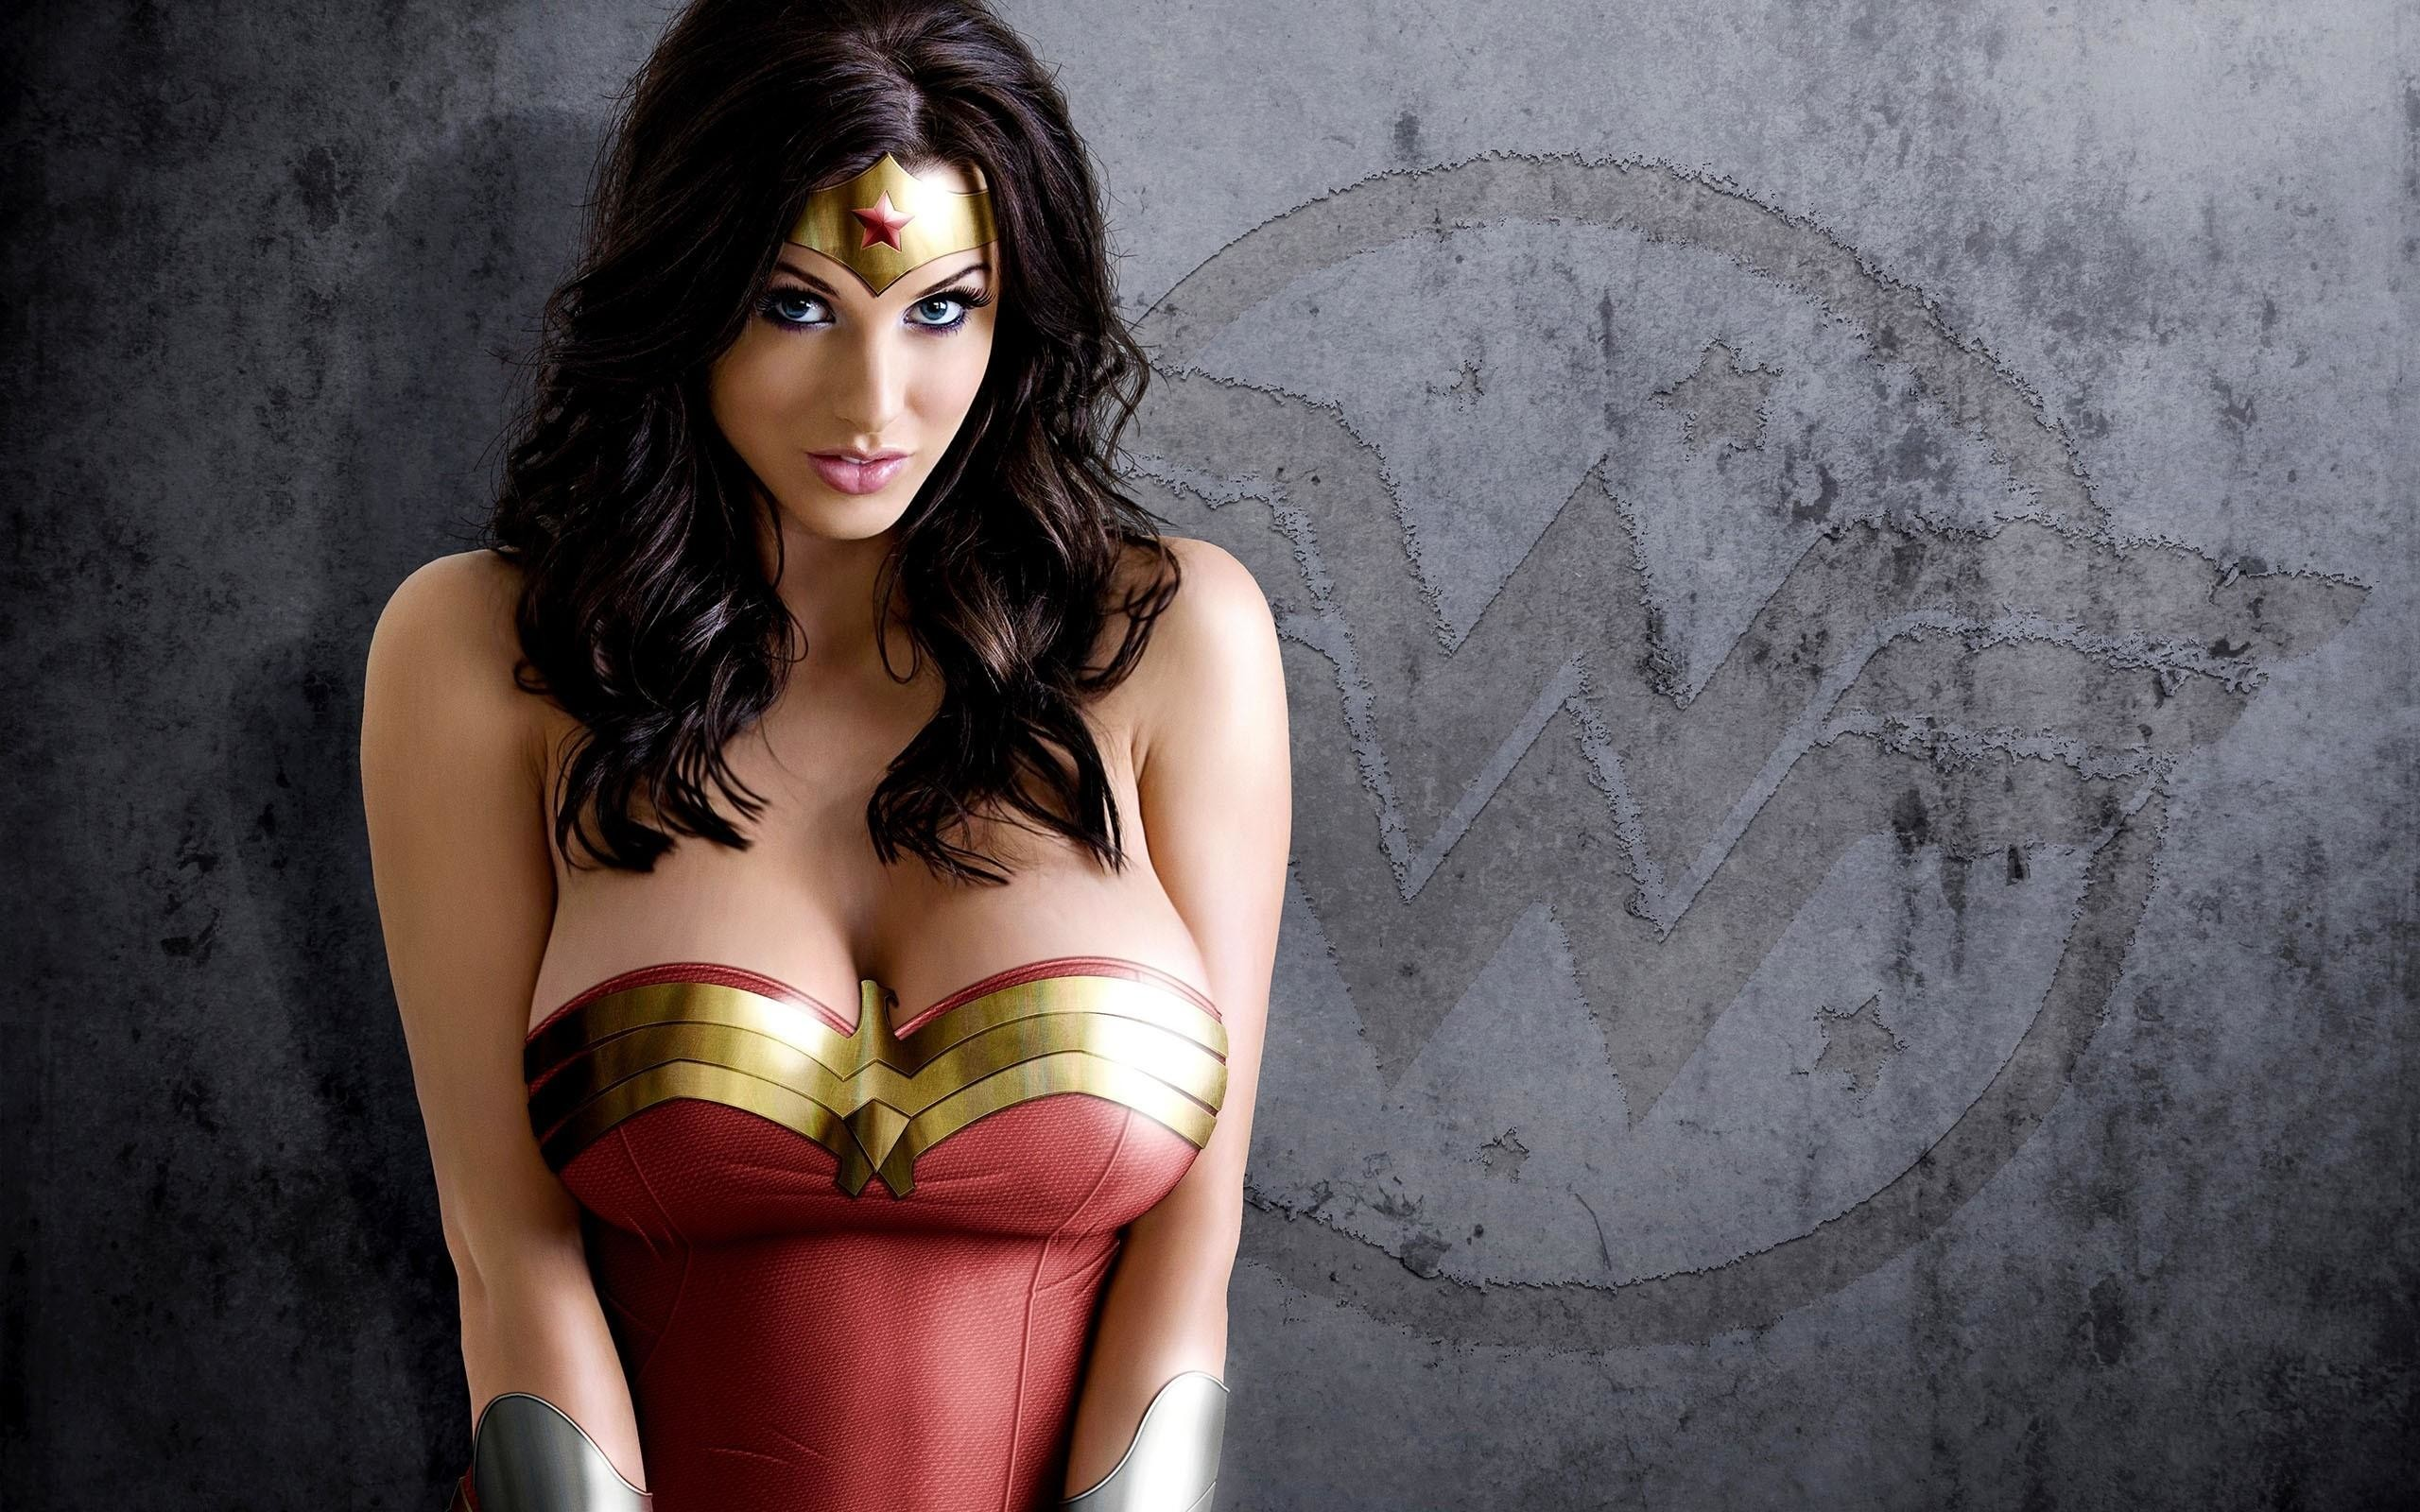 Wonder Woman Wallpapers: Burma Ricard, Browse And Download Free Pictures